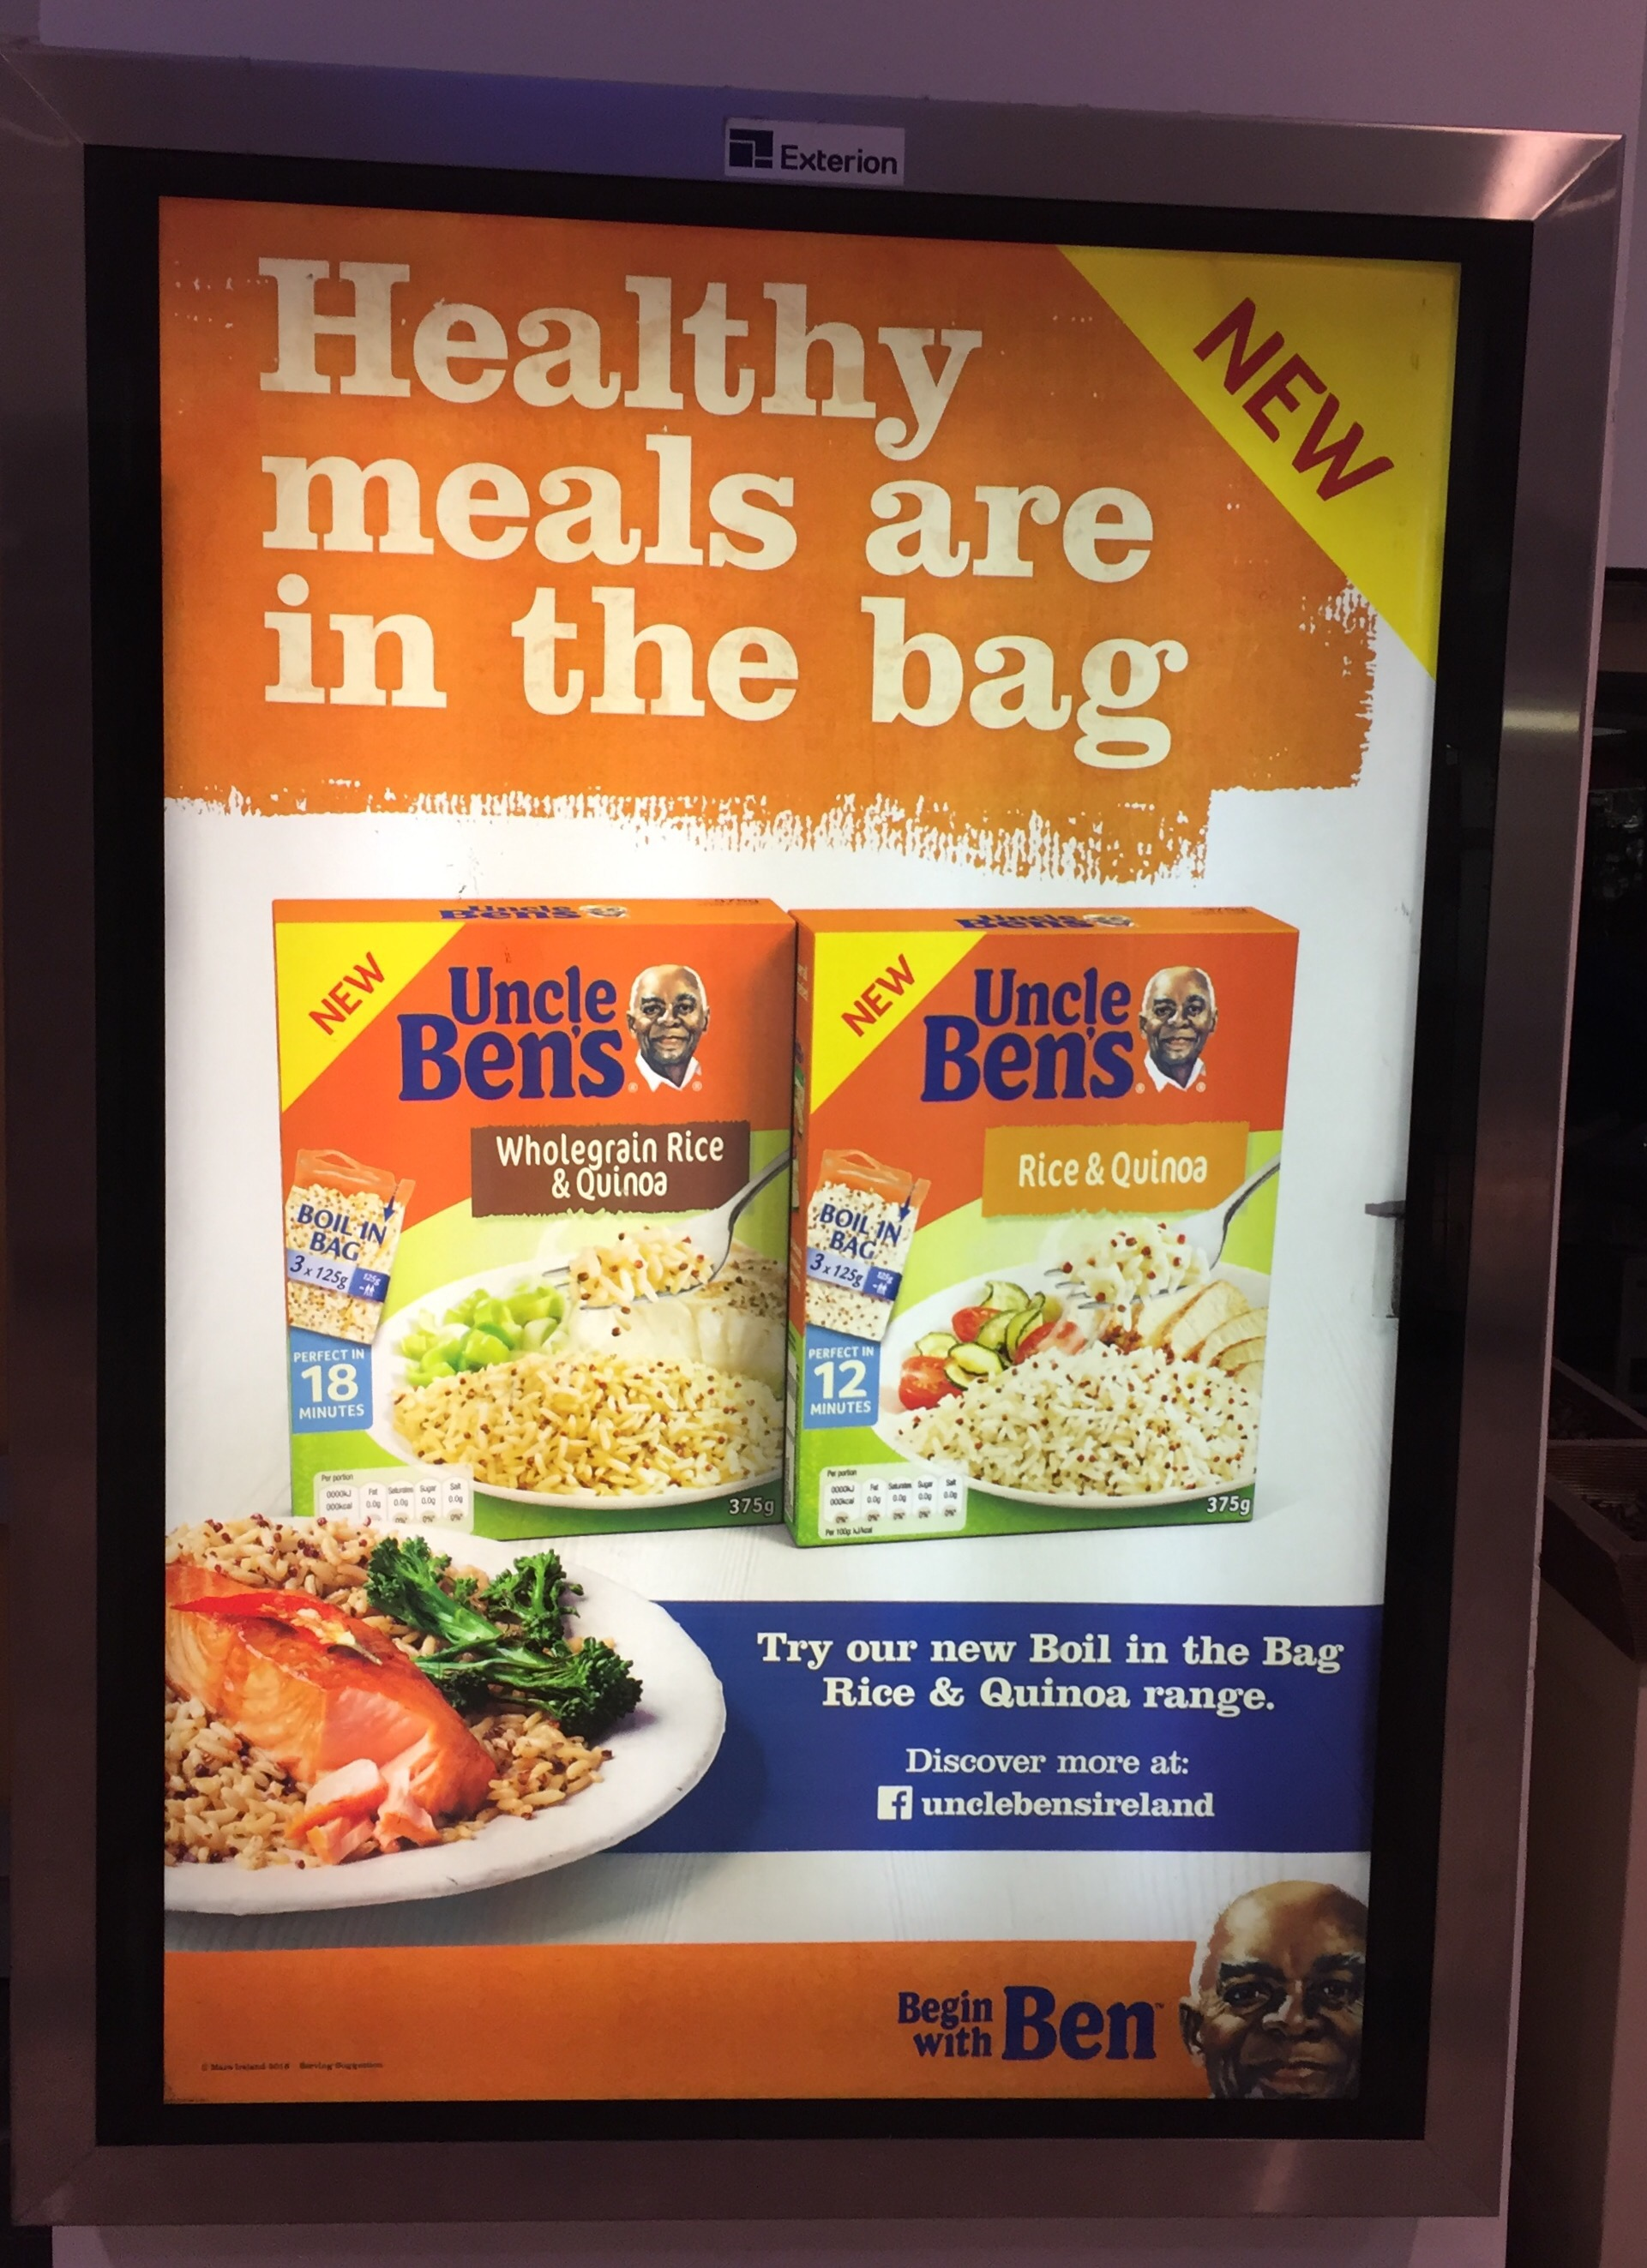 Uncle Bens – healthy meals are in the bag